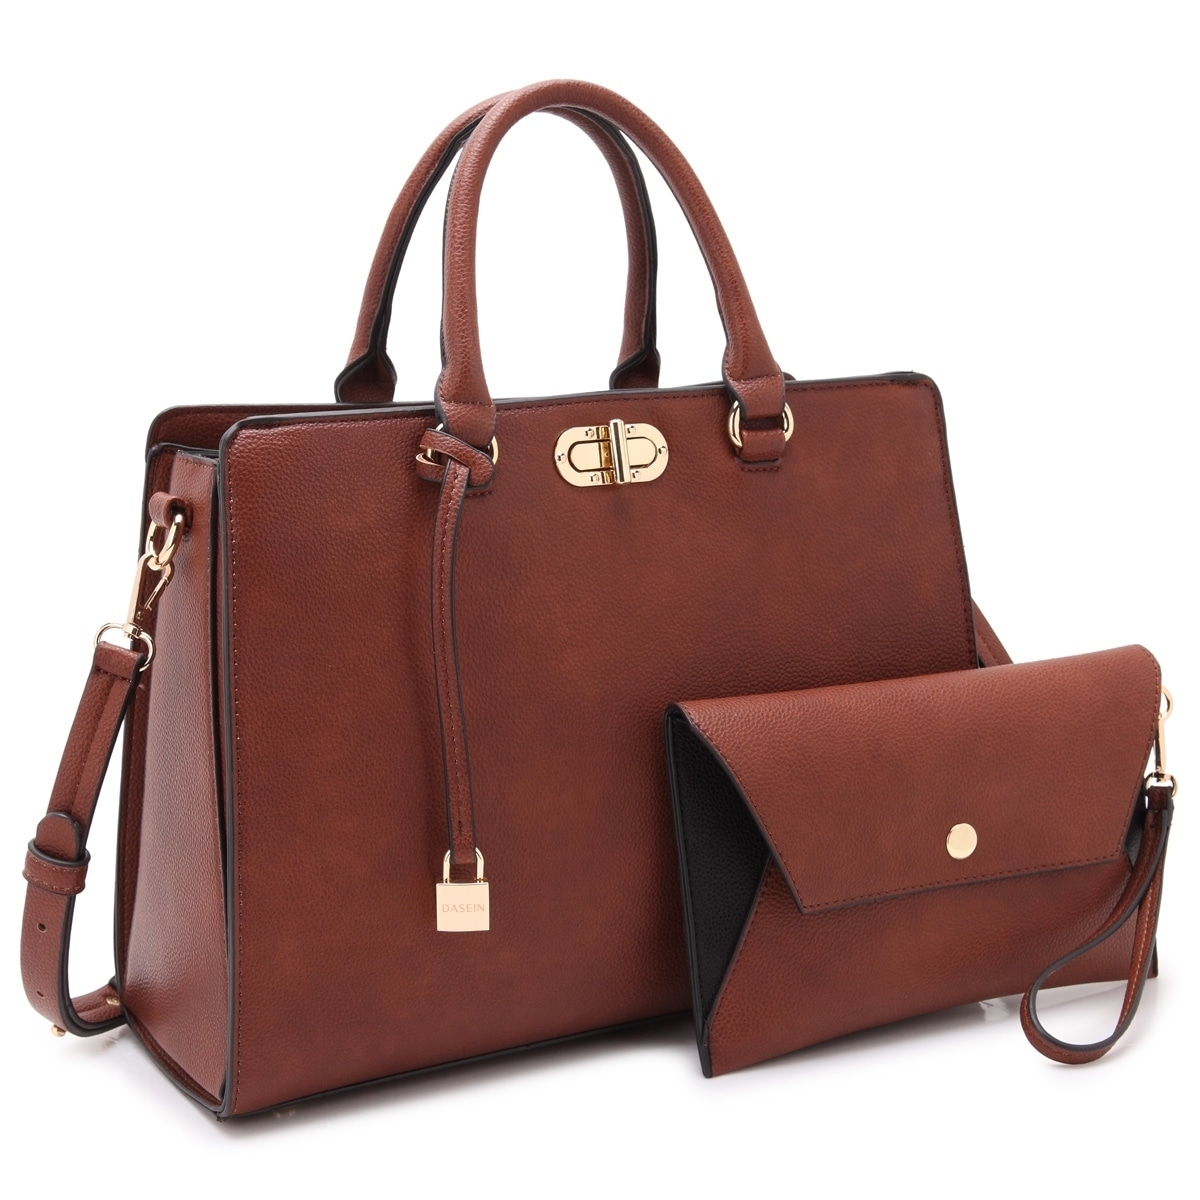 c9edd2ea220 Shop Dasein Faux Leather Padlock Accent Twist Lock Satchel Handbag with Matching  Wristlet - Free Shipping On Orders Over $45 - Overstock - 18232269